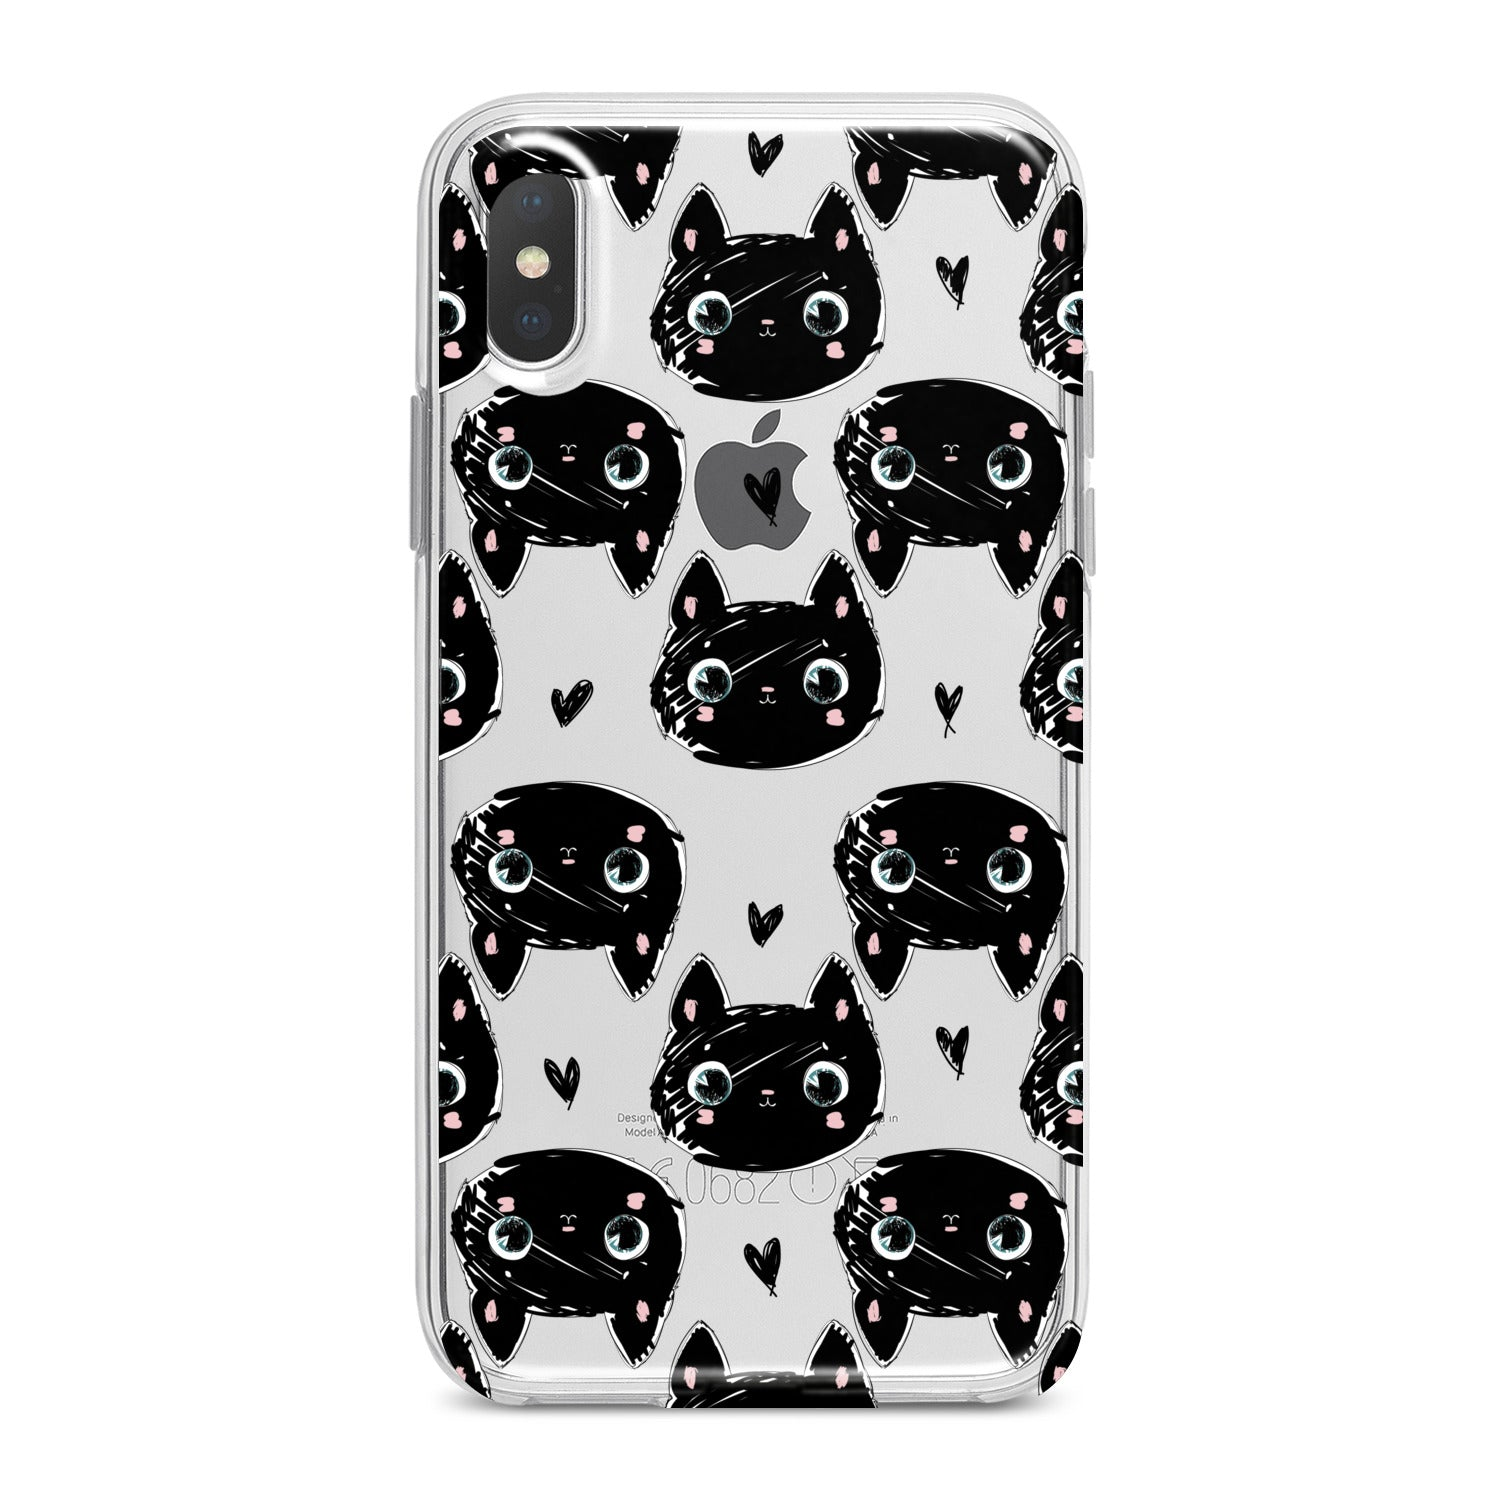 Lex Altern Black Cats Phone Case for your iPhone & Android phone.